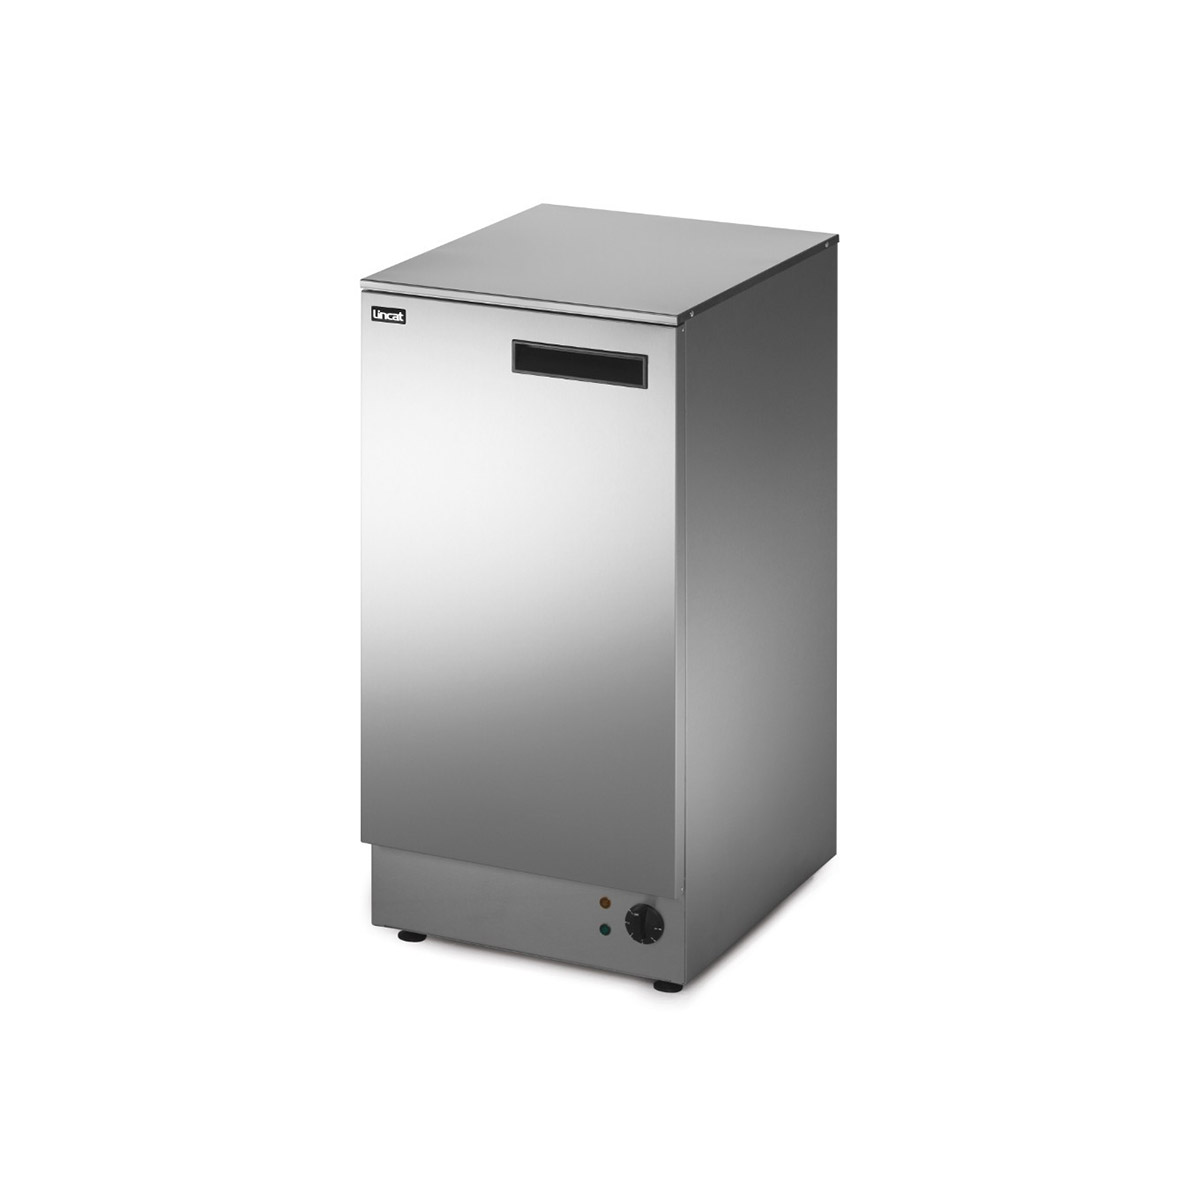 PLH45 - Lincat Panther Light Duty Series Free-standing Hot Cupboard - Static - W 450 mm - 0.75 kW